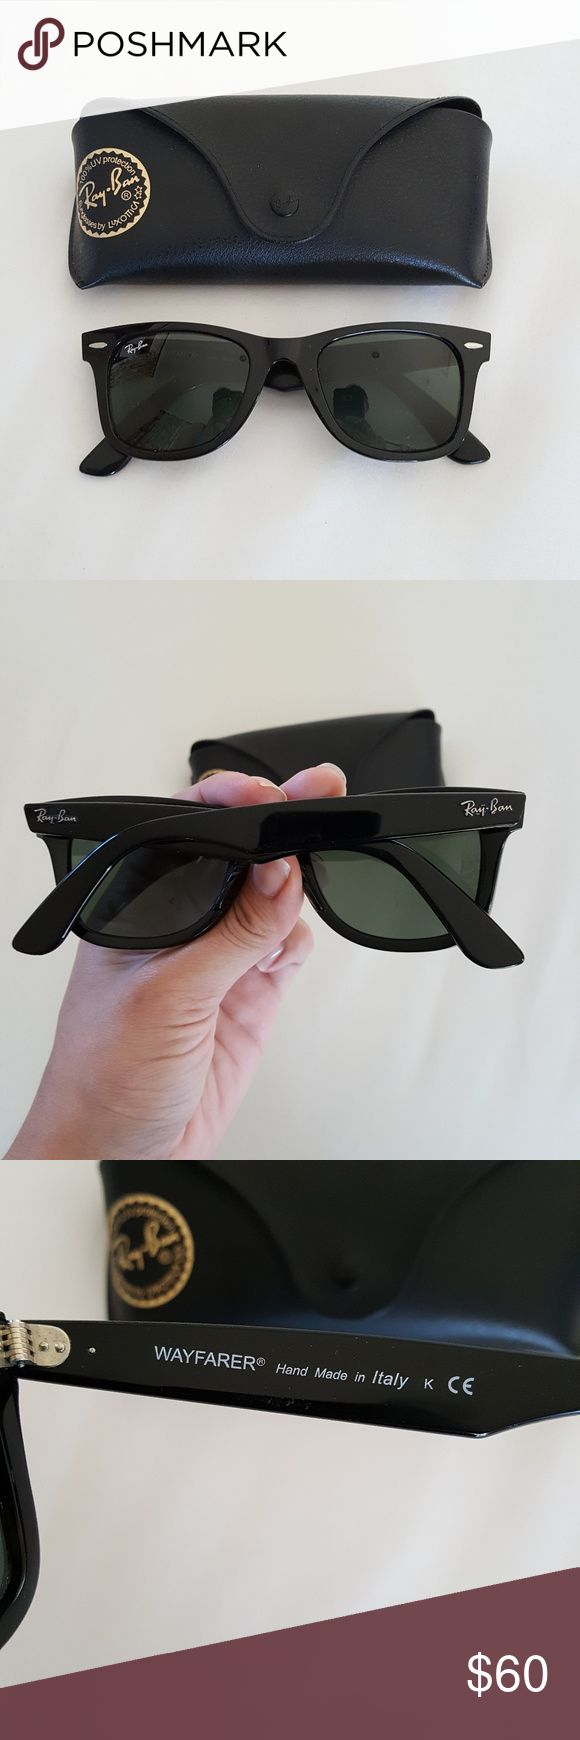 Authentic Wayfarer Ray-Ban Unisex Great condition, 100% authentic. Size 50-22. Don't need them anymore, I just got a new aviators :-) Case included. Fast shipper! Ray-Ban Accessories Sunglasses